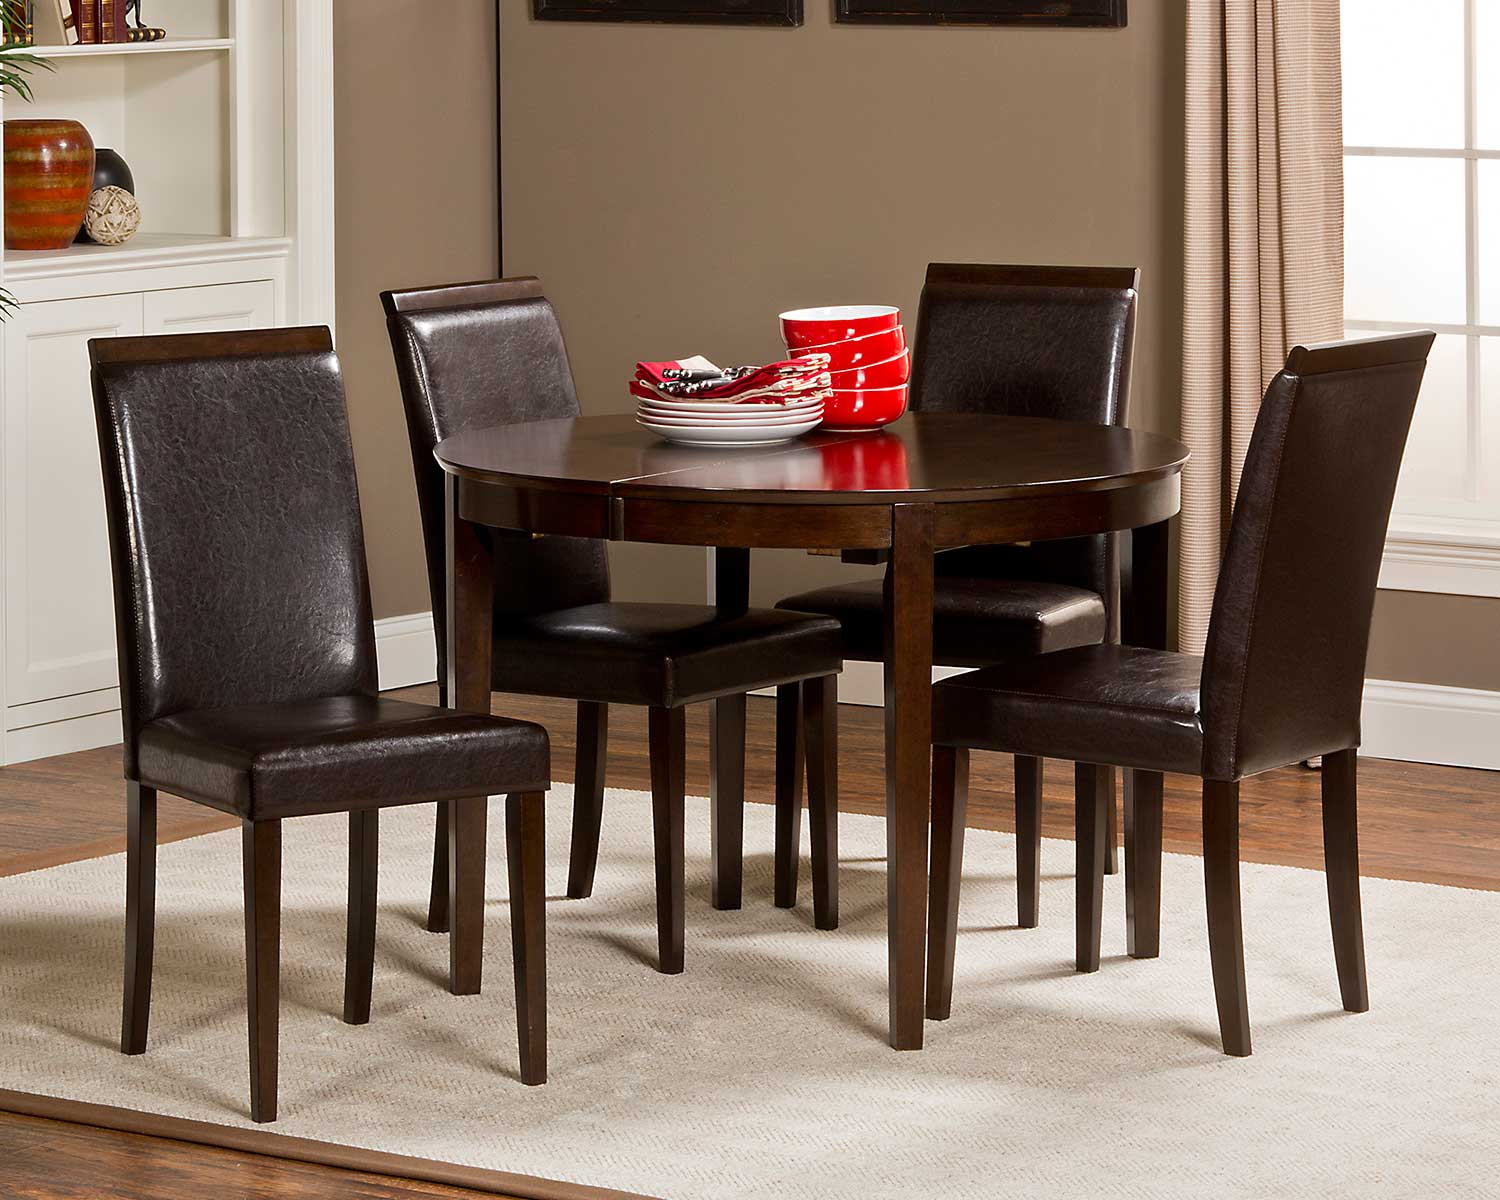 Hillsdale Atmore 5 piece Dining Set - Cappuccino